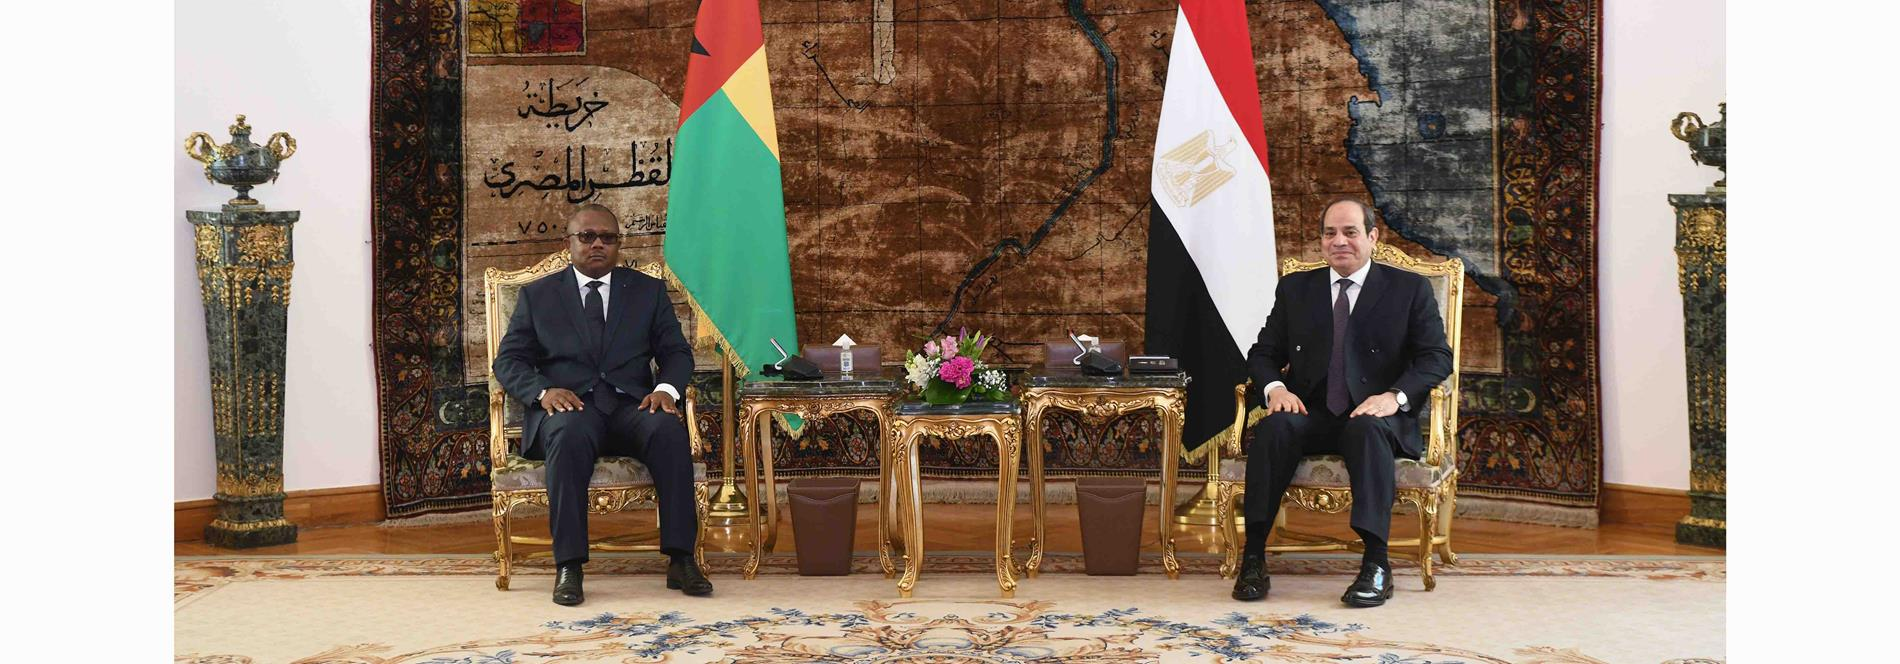 President El-Sisi Expresses Pleasure at Meeting with President of Guinea-Bissau